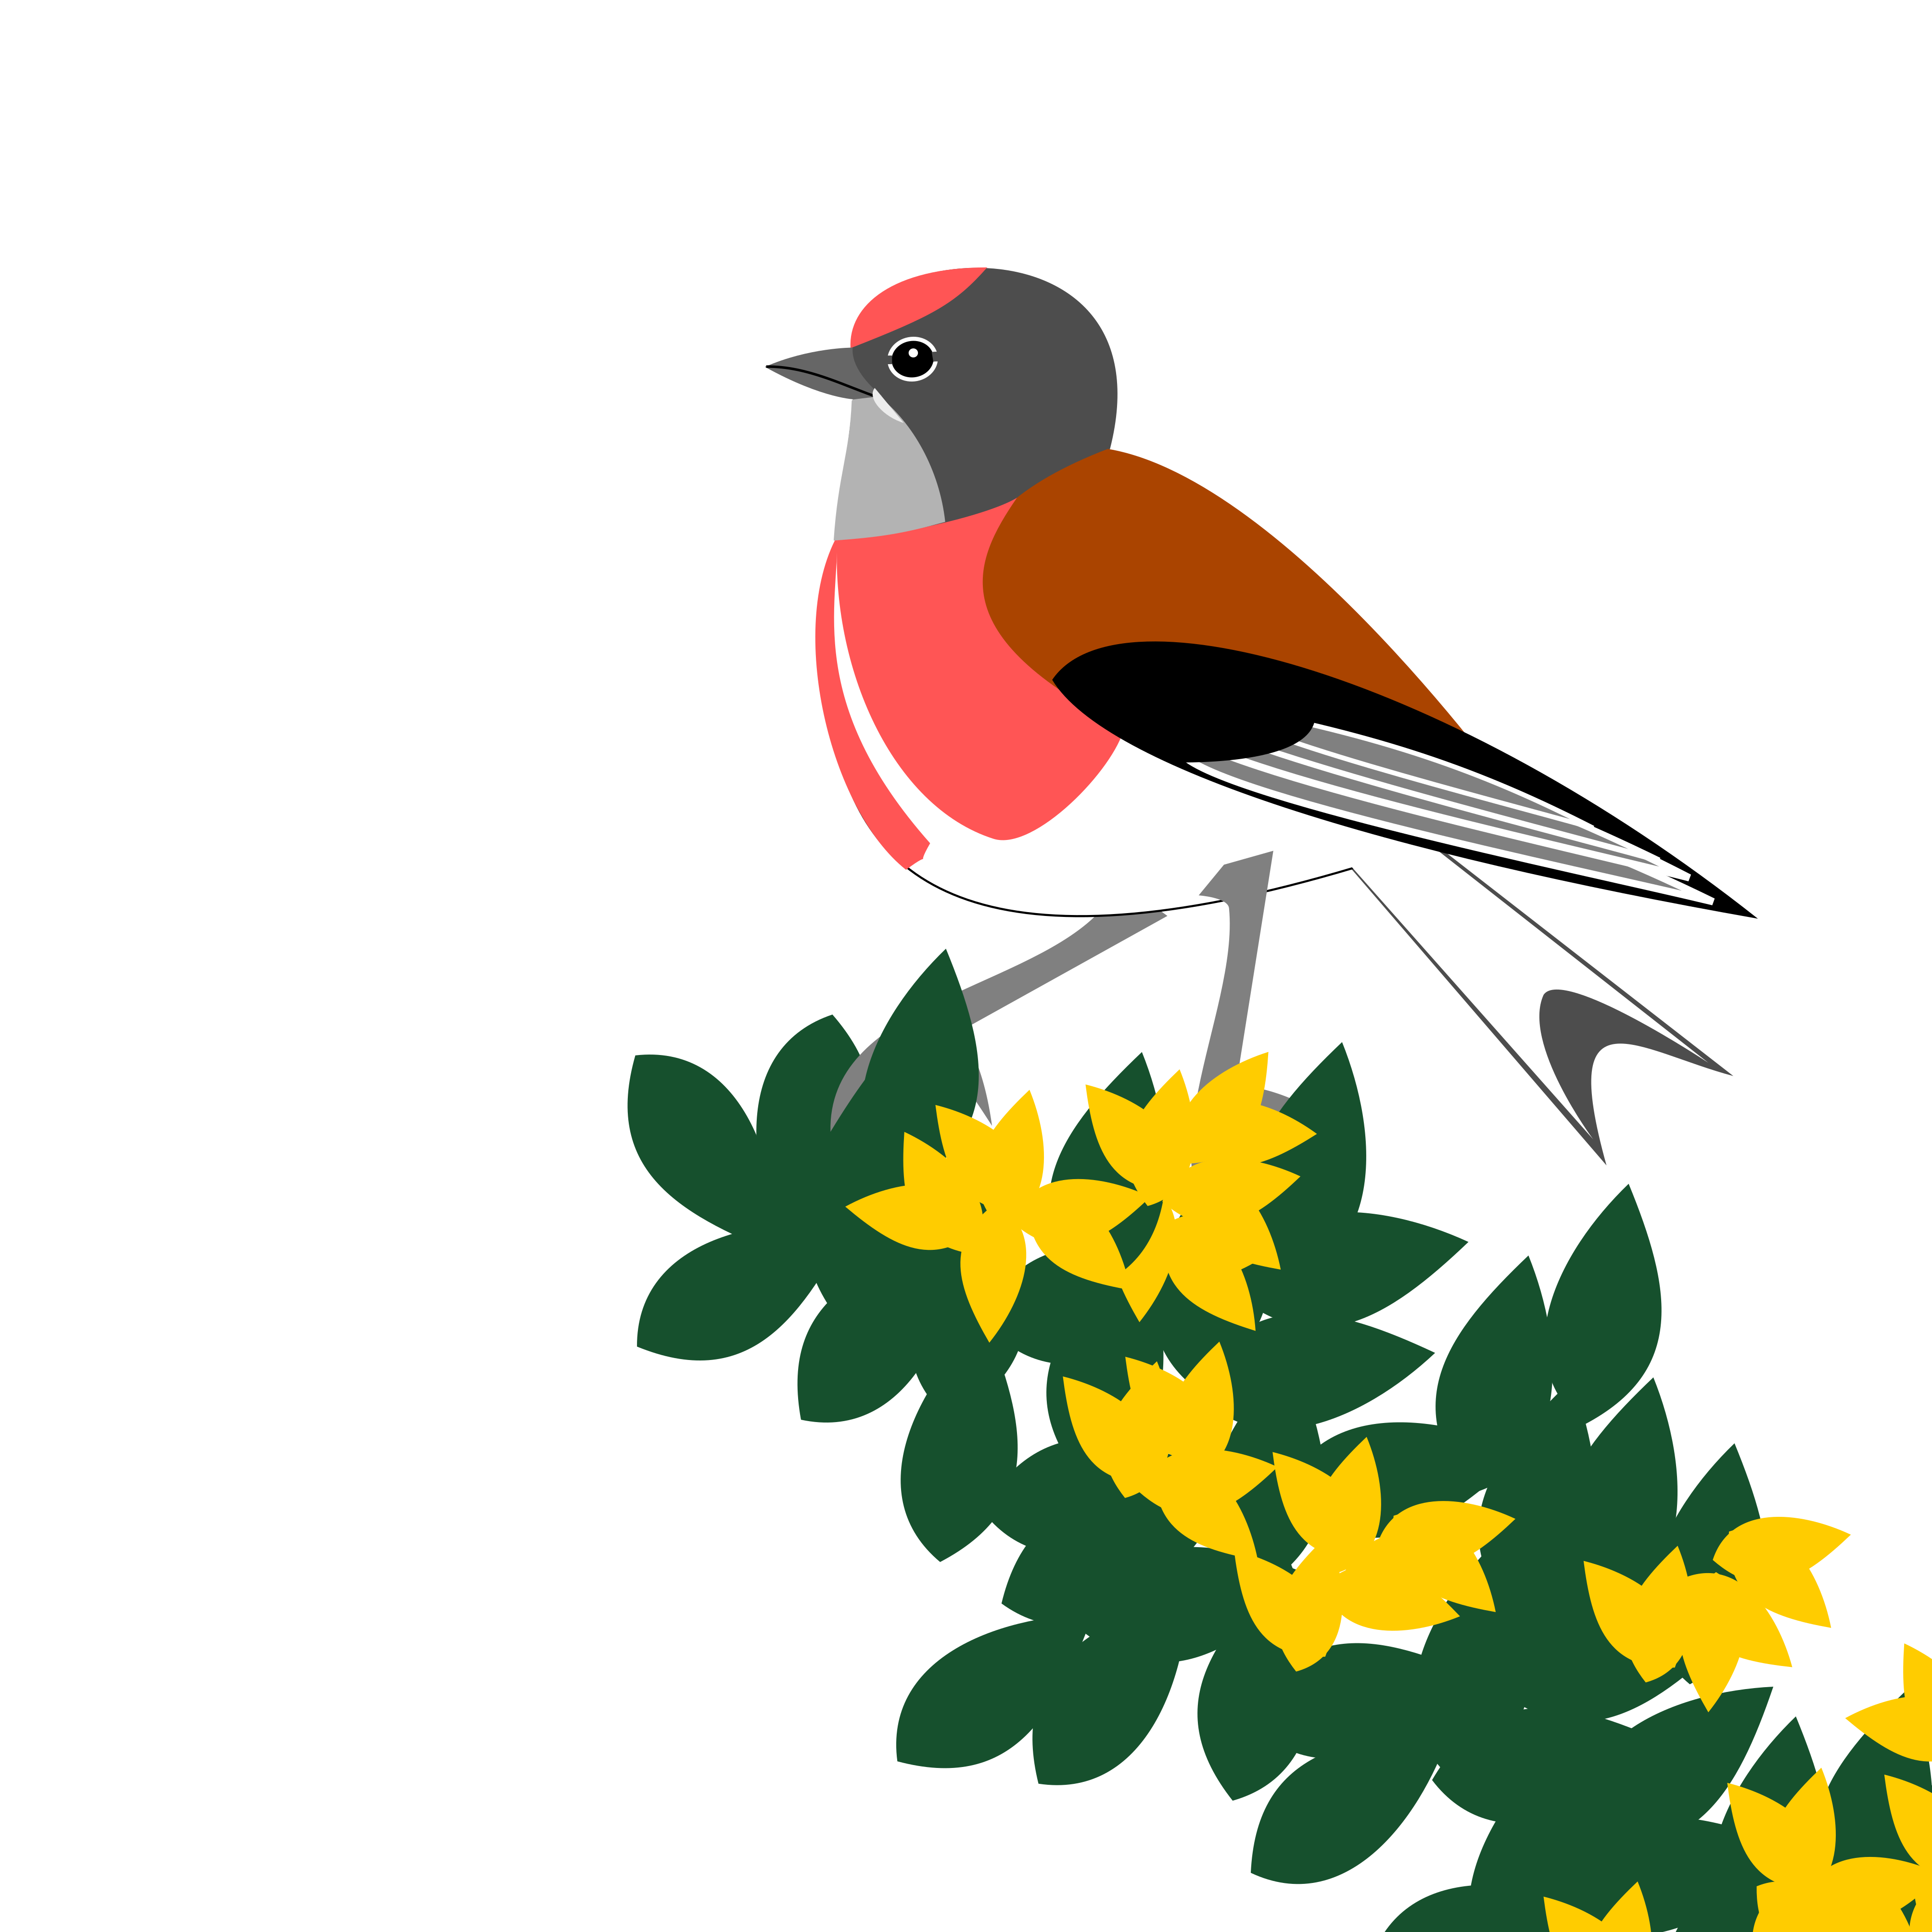 a linnet perched on top of a gorse bush. Simply drawn with flat bold colours on a white background